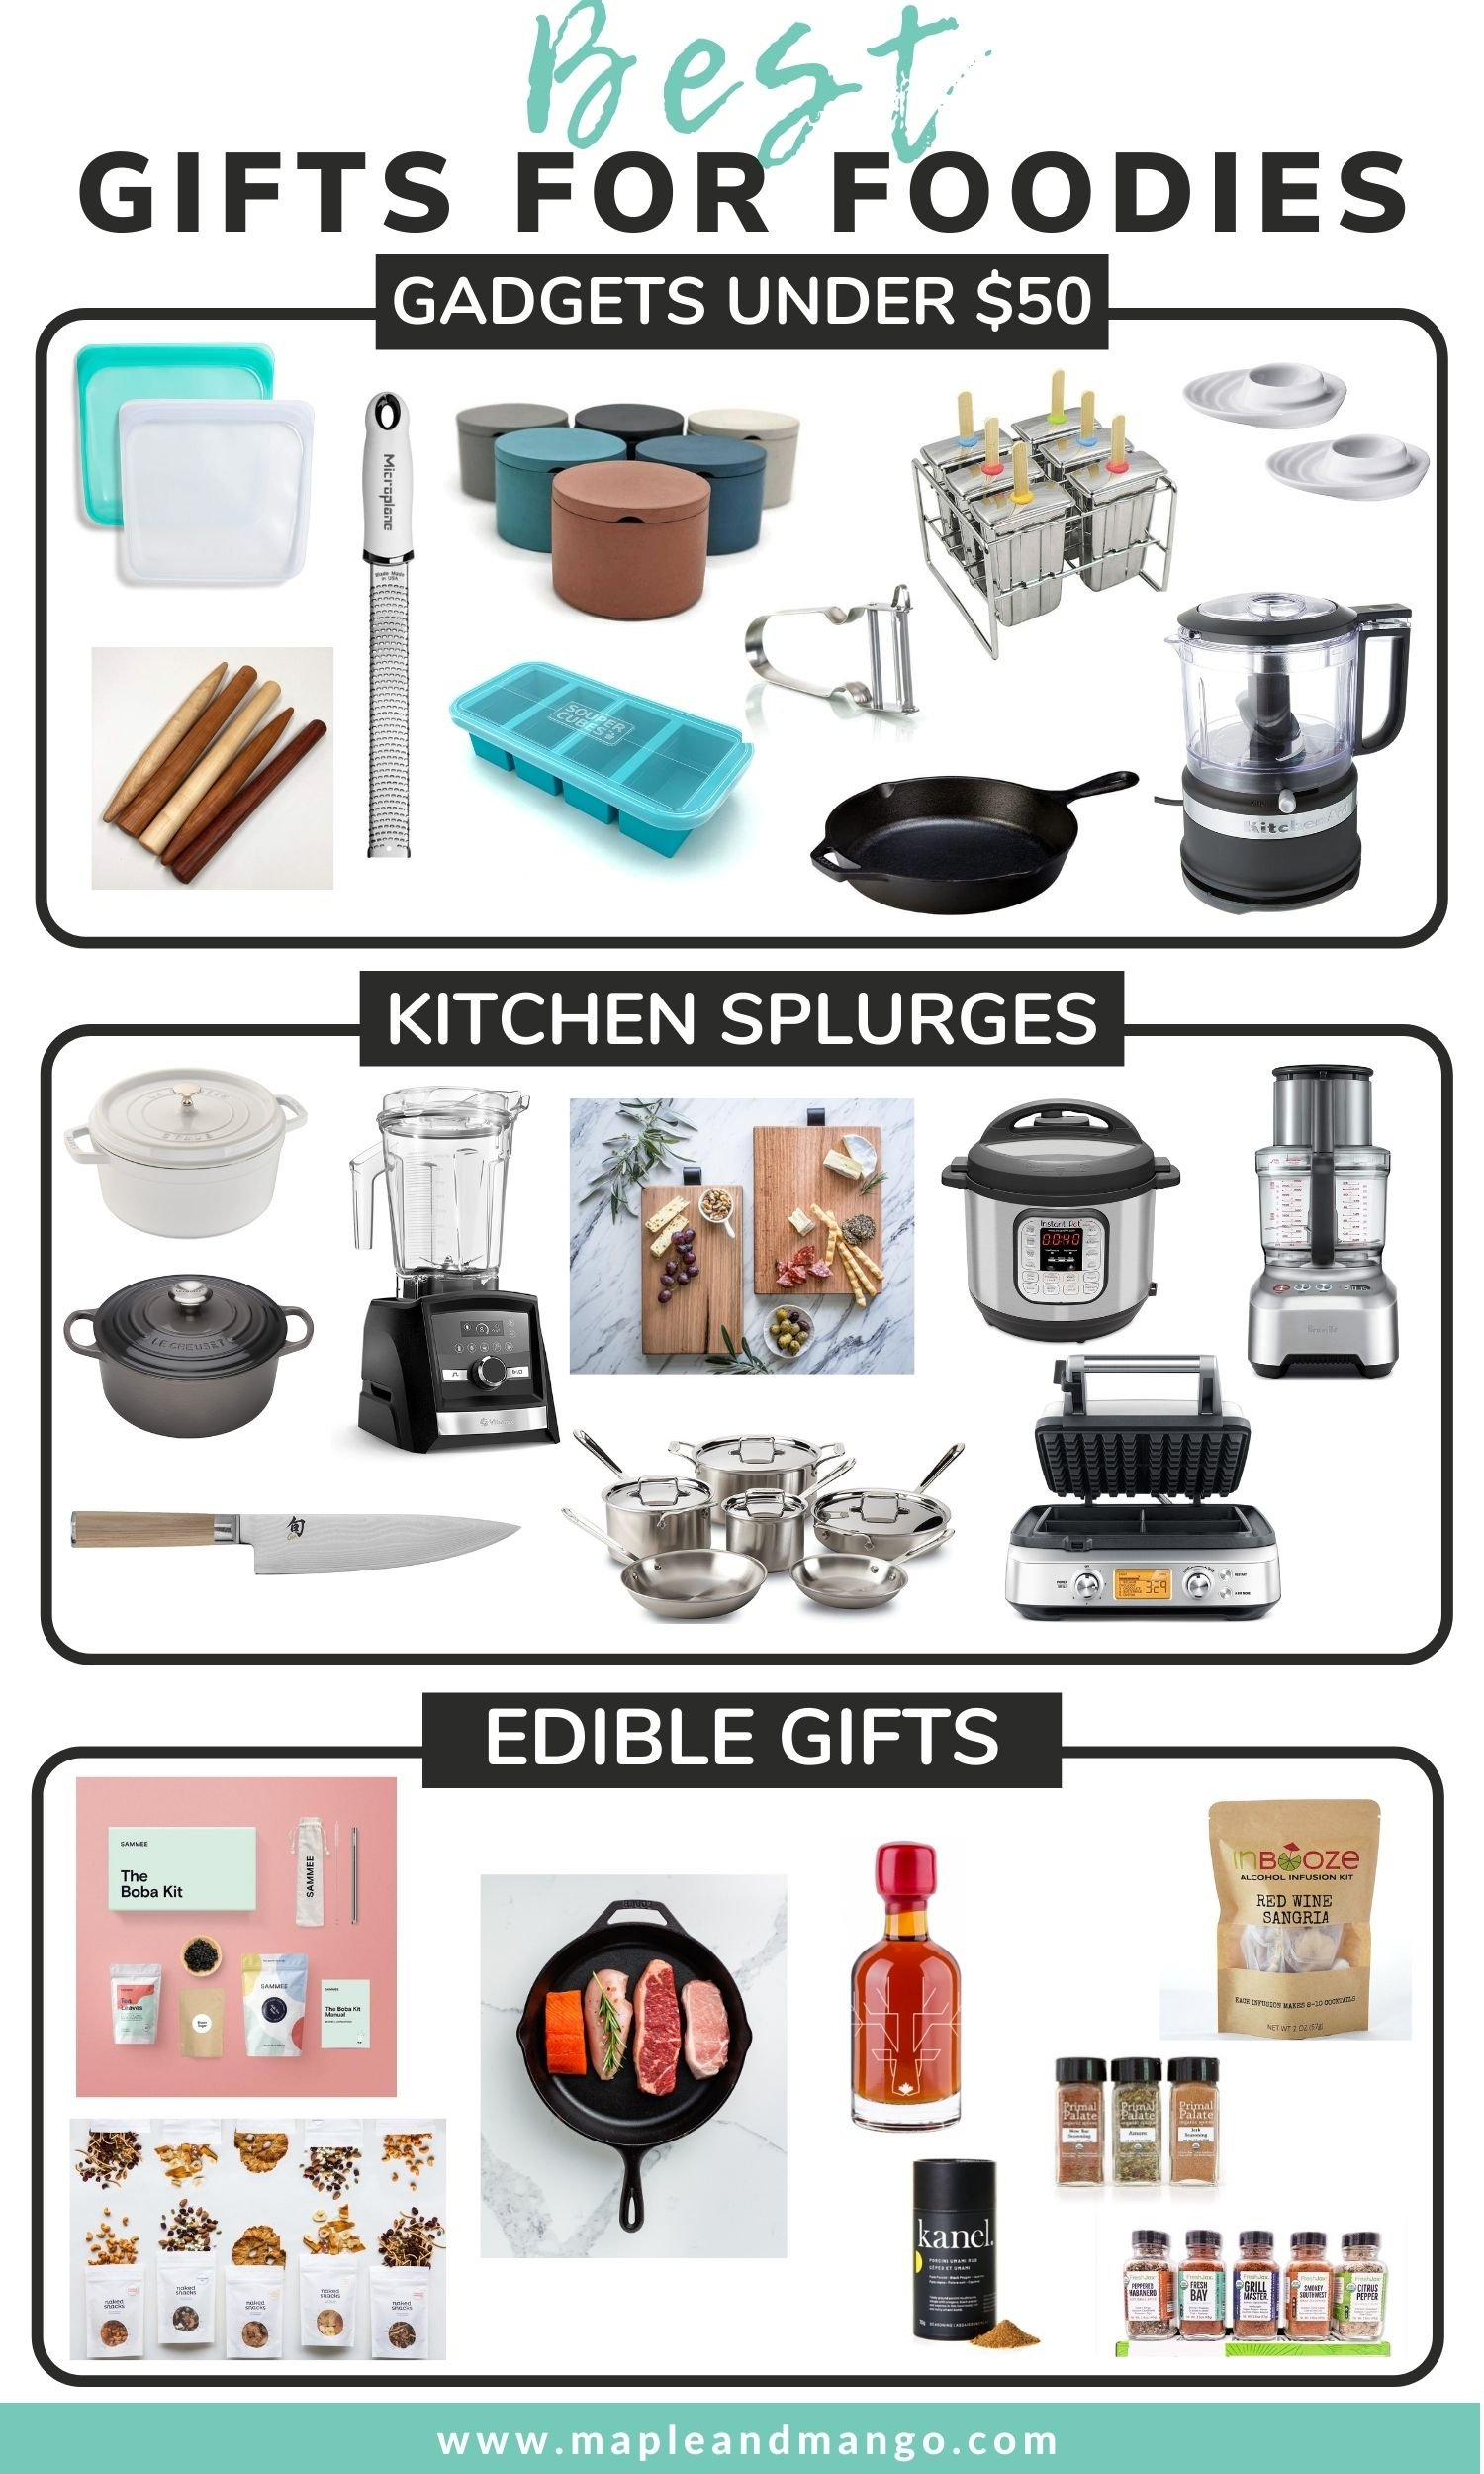 Pinterest collage graphic for the best gifts for foodies.